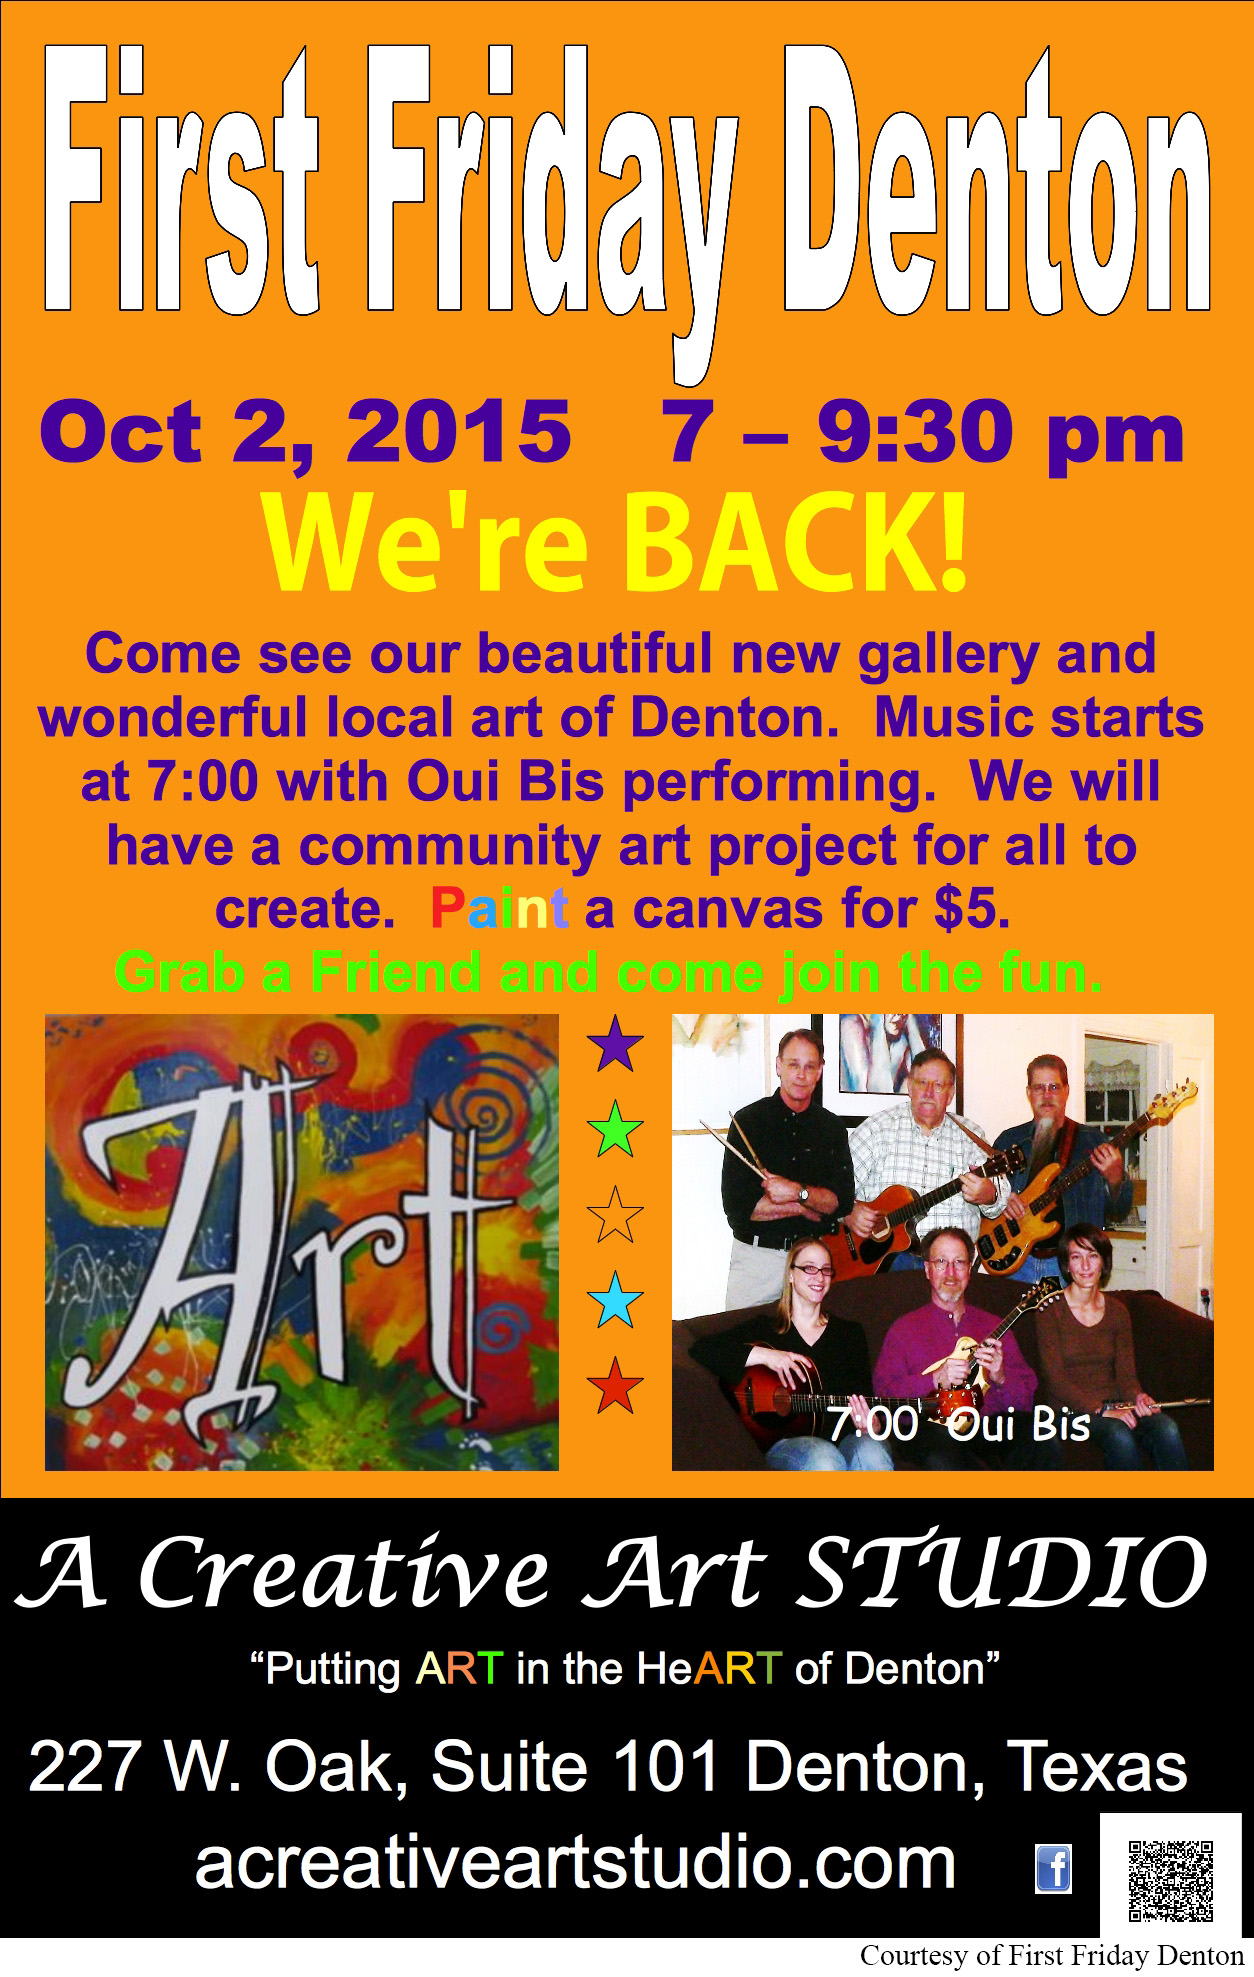 First-Friday-Denton-October-2-2015-A-Creative-Flyer with credit